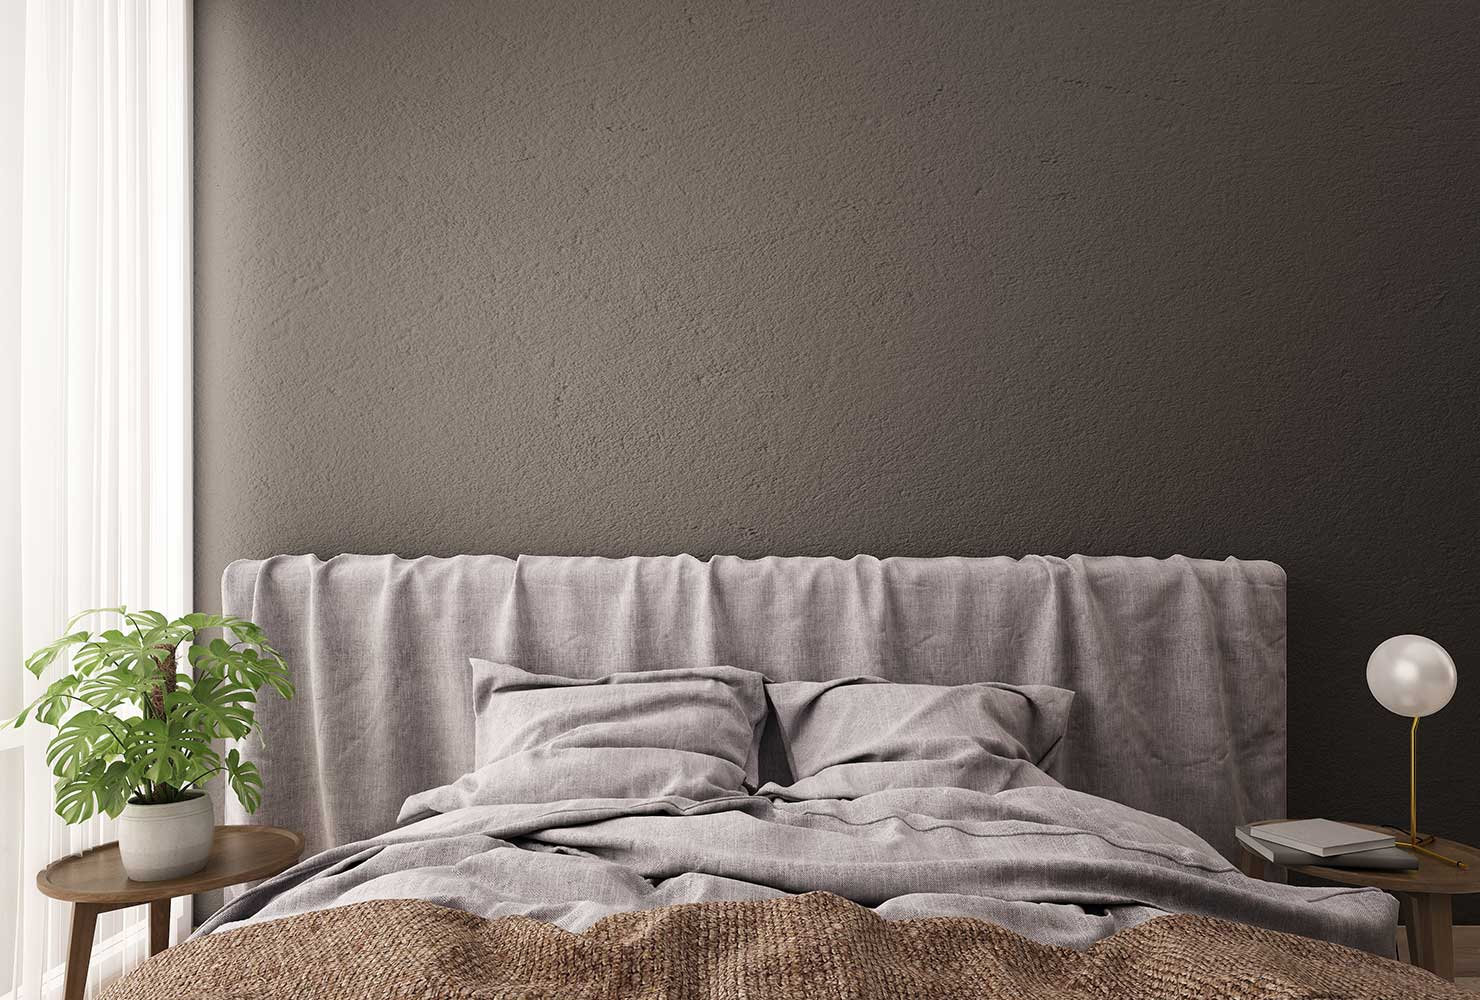 Taupe colored wall with purple bedding and plant.